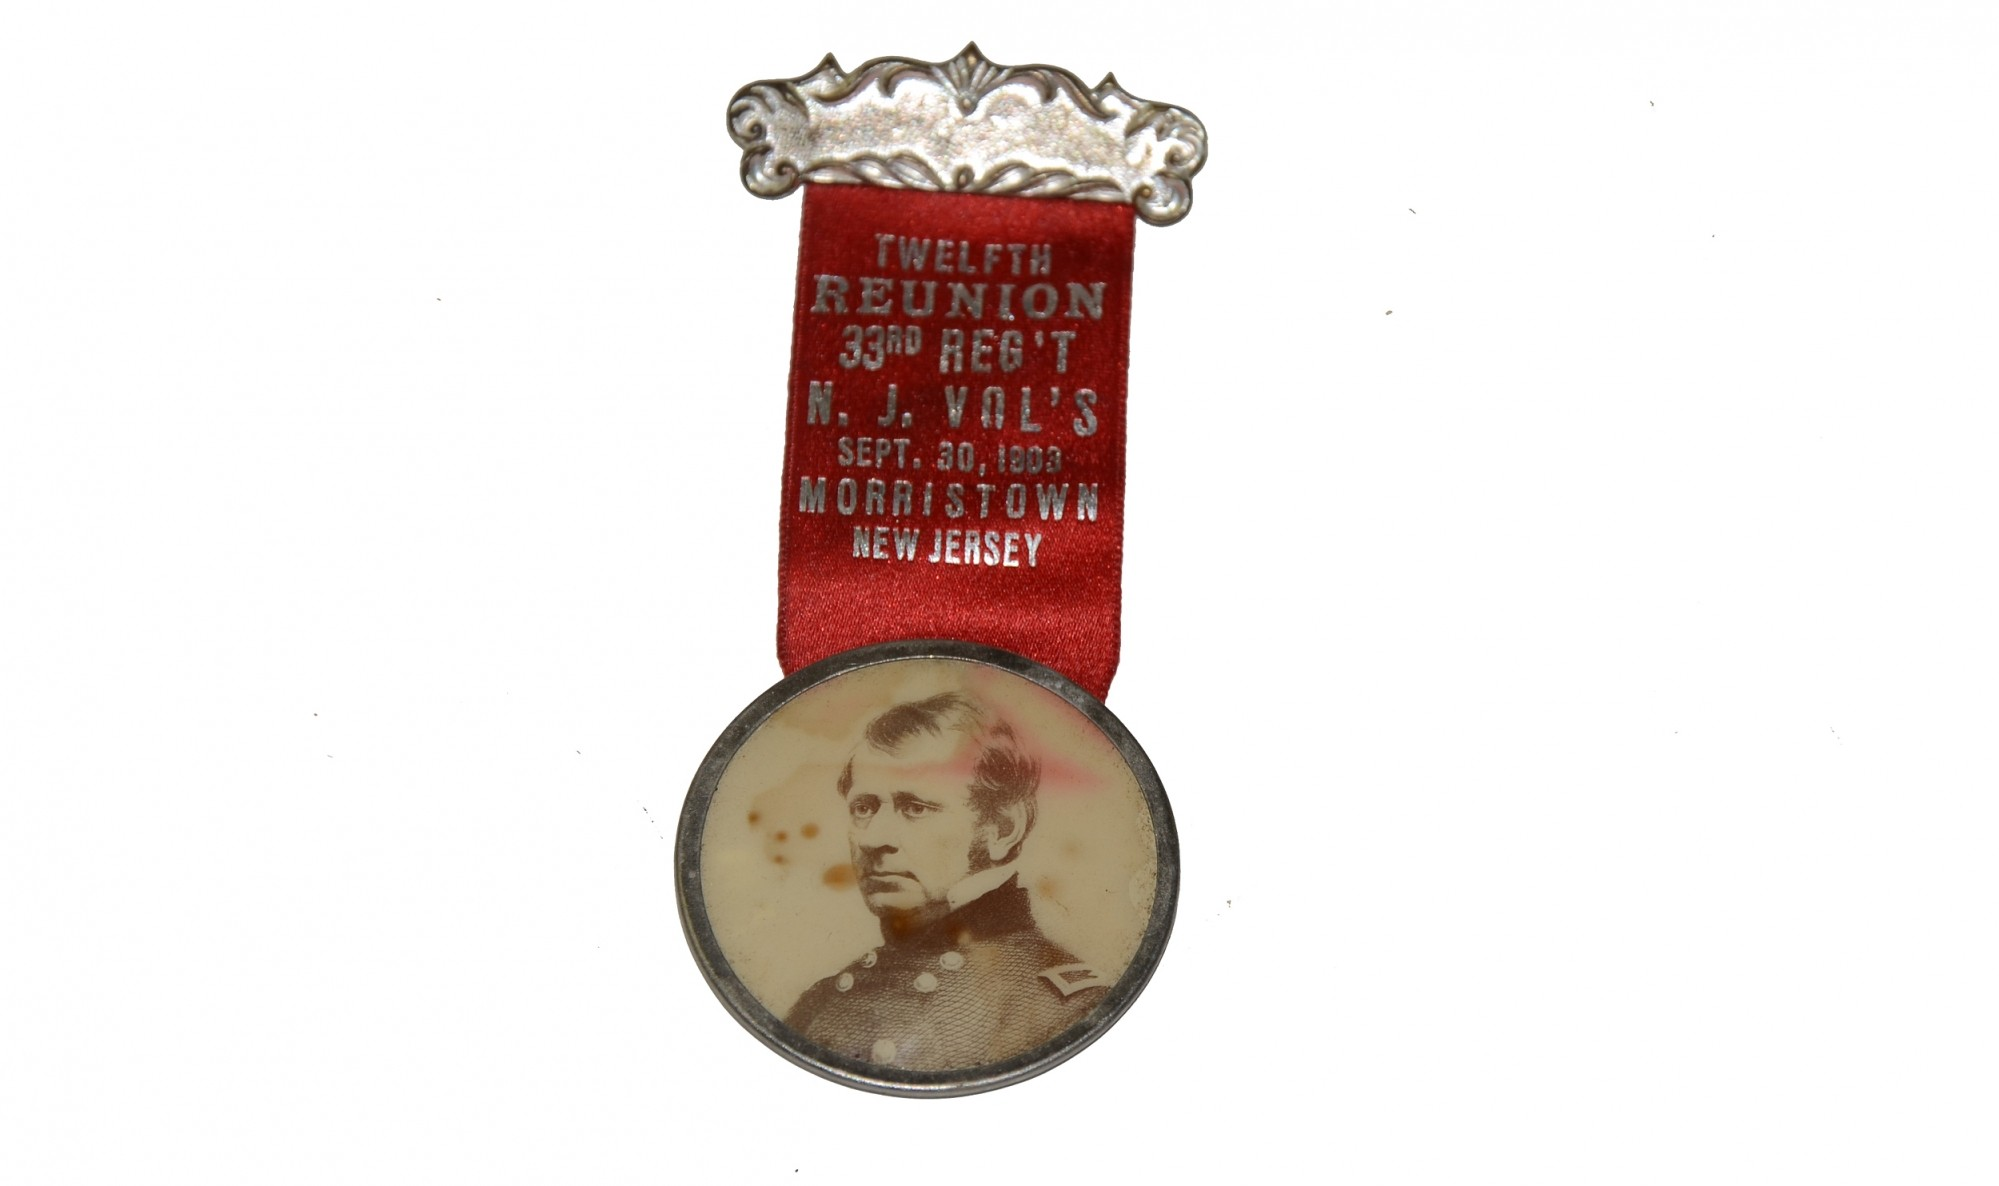 1903 REUNION BADGE FOR THE 33RD NEW JERSEY